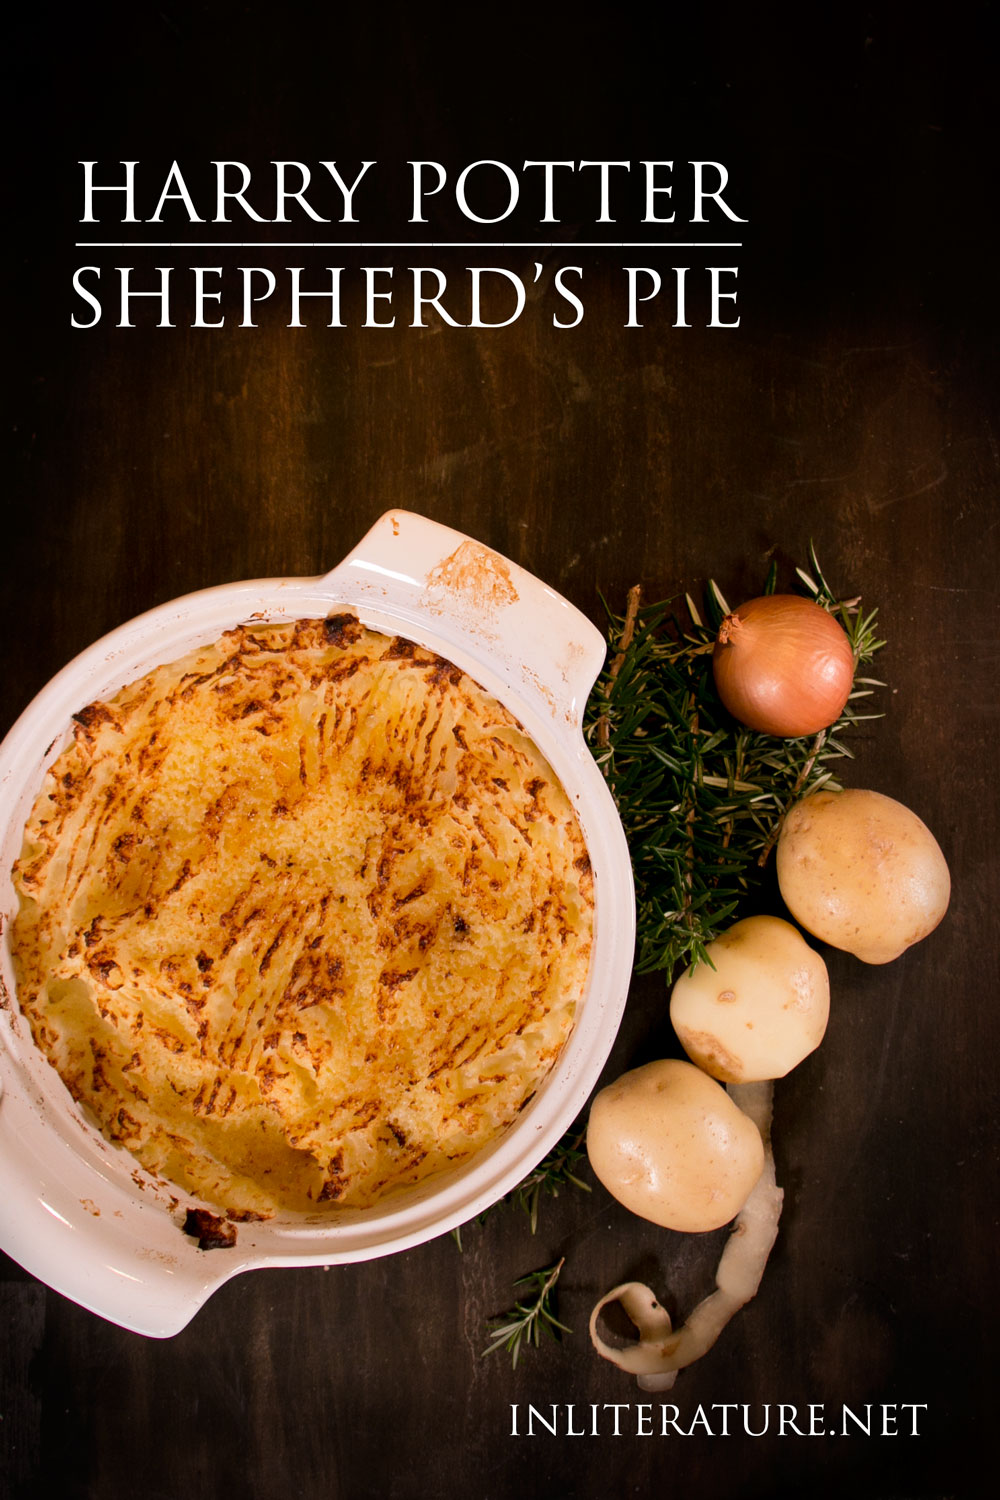 A simple yet filling main meal from Harry Potter, Shepherd's Pie is perfect as either a midweek meal or as a dish for a dinner party.